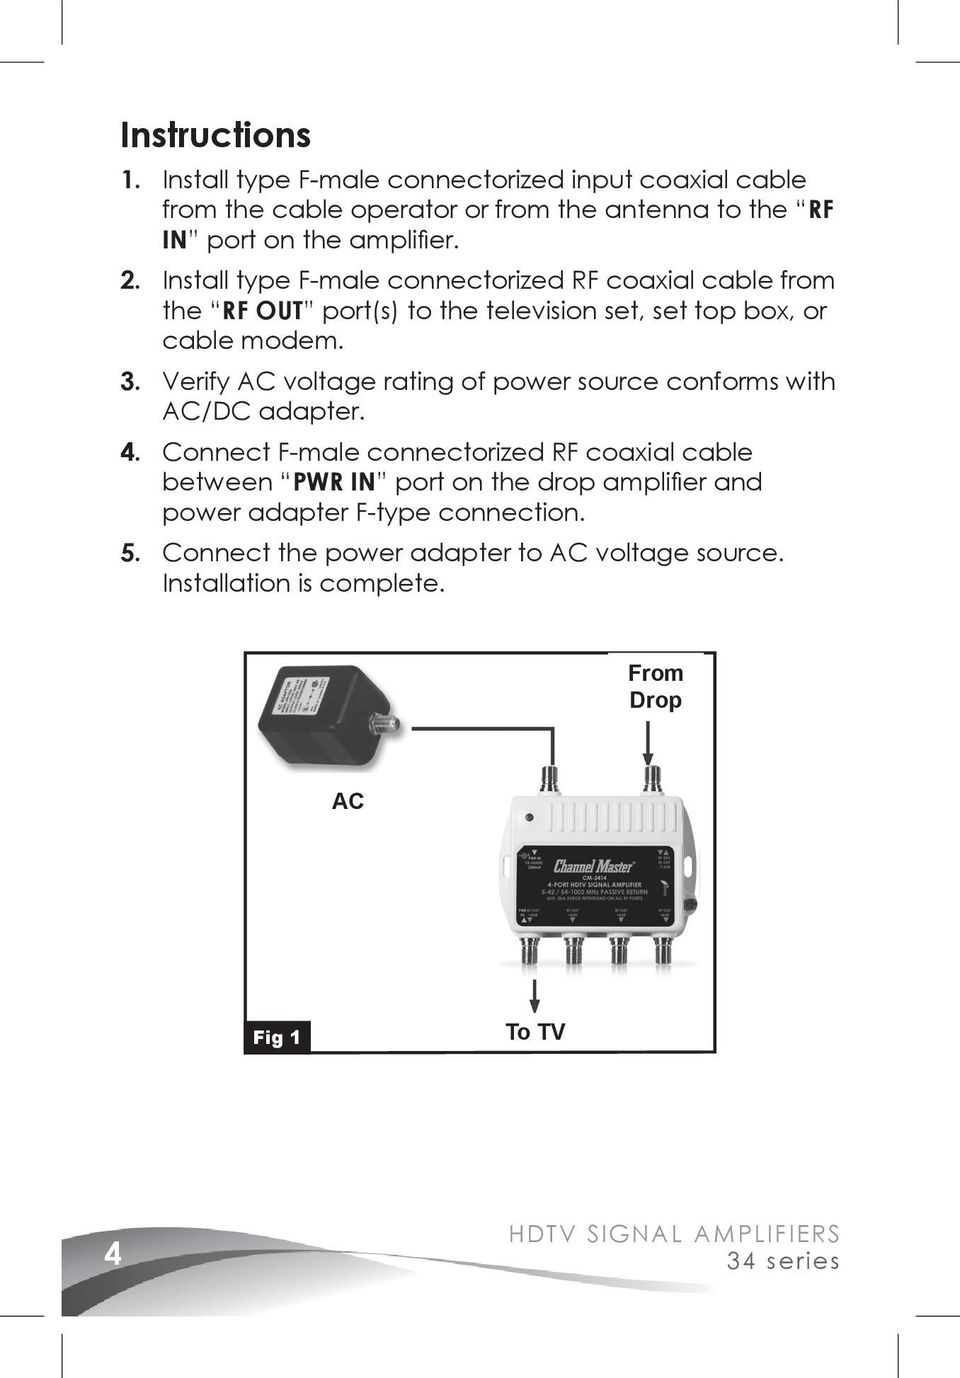 Verify AC voltage rating of power source conforms with AC/DC adapter. 4.